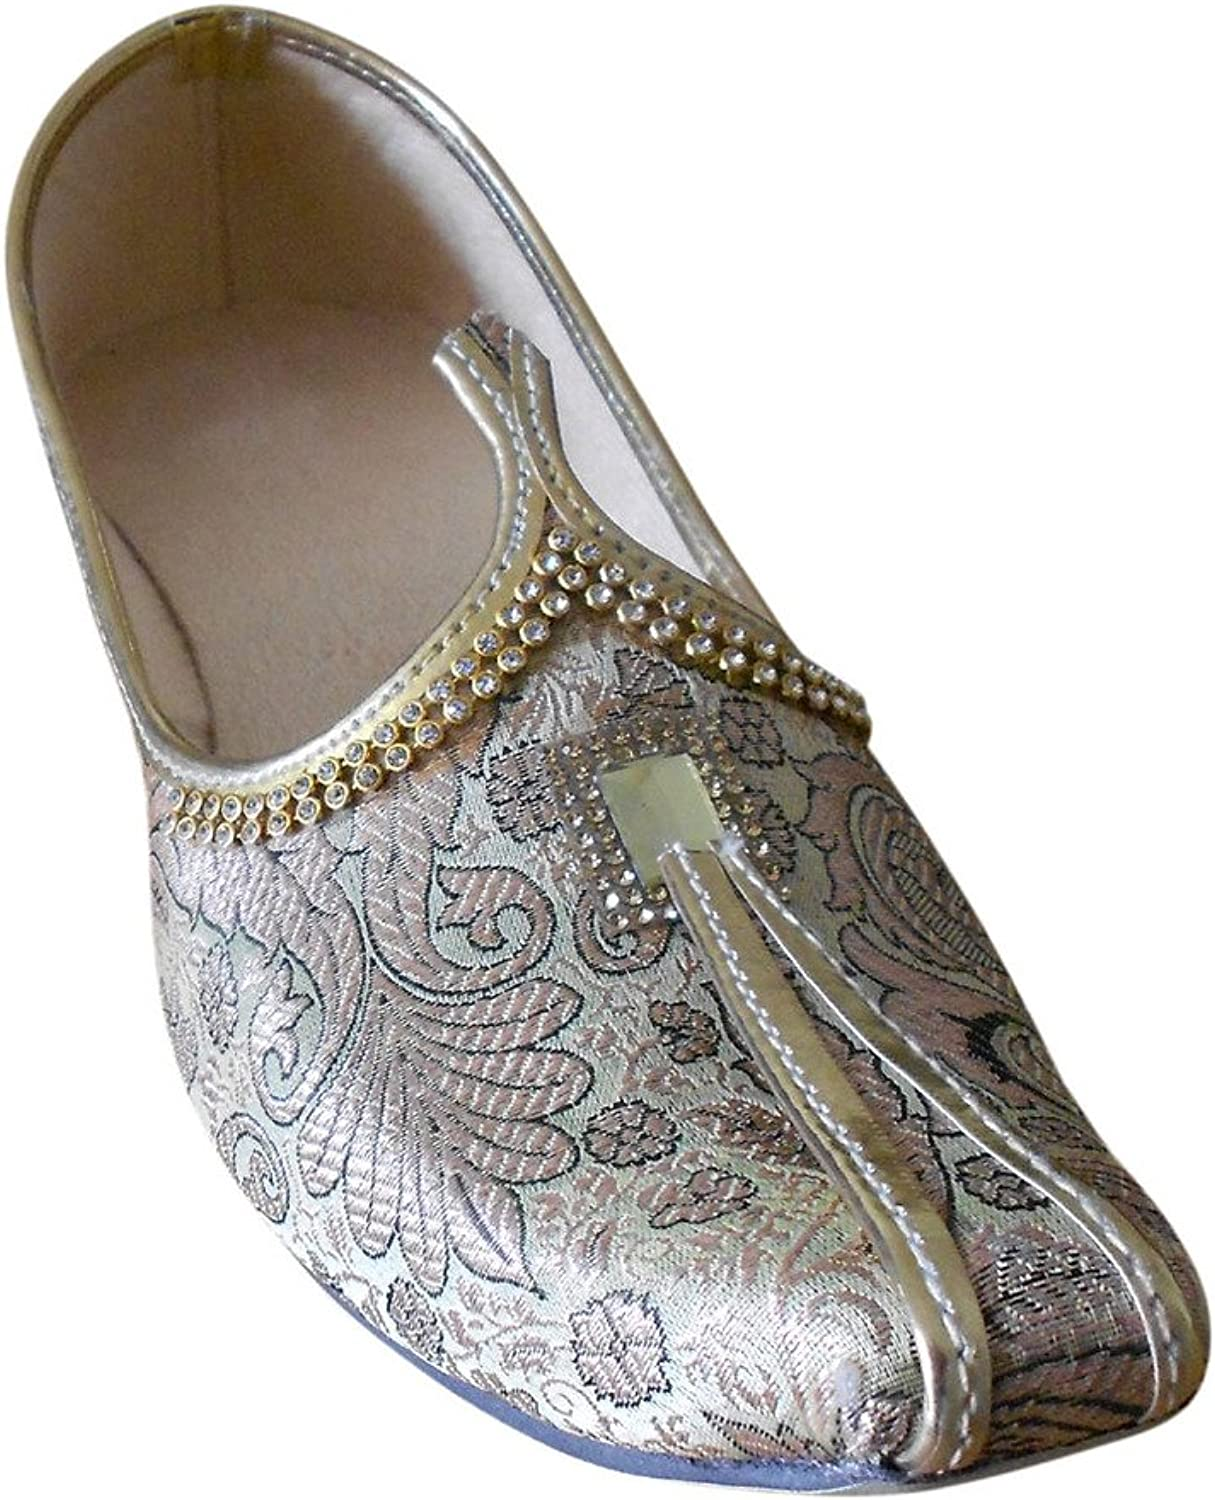 Kalra Creations Men's Jutti Traditional Indian Casual shoes